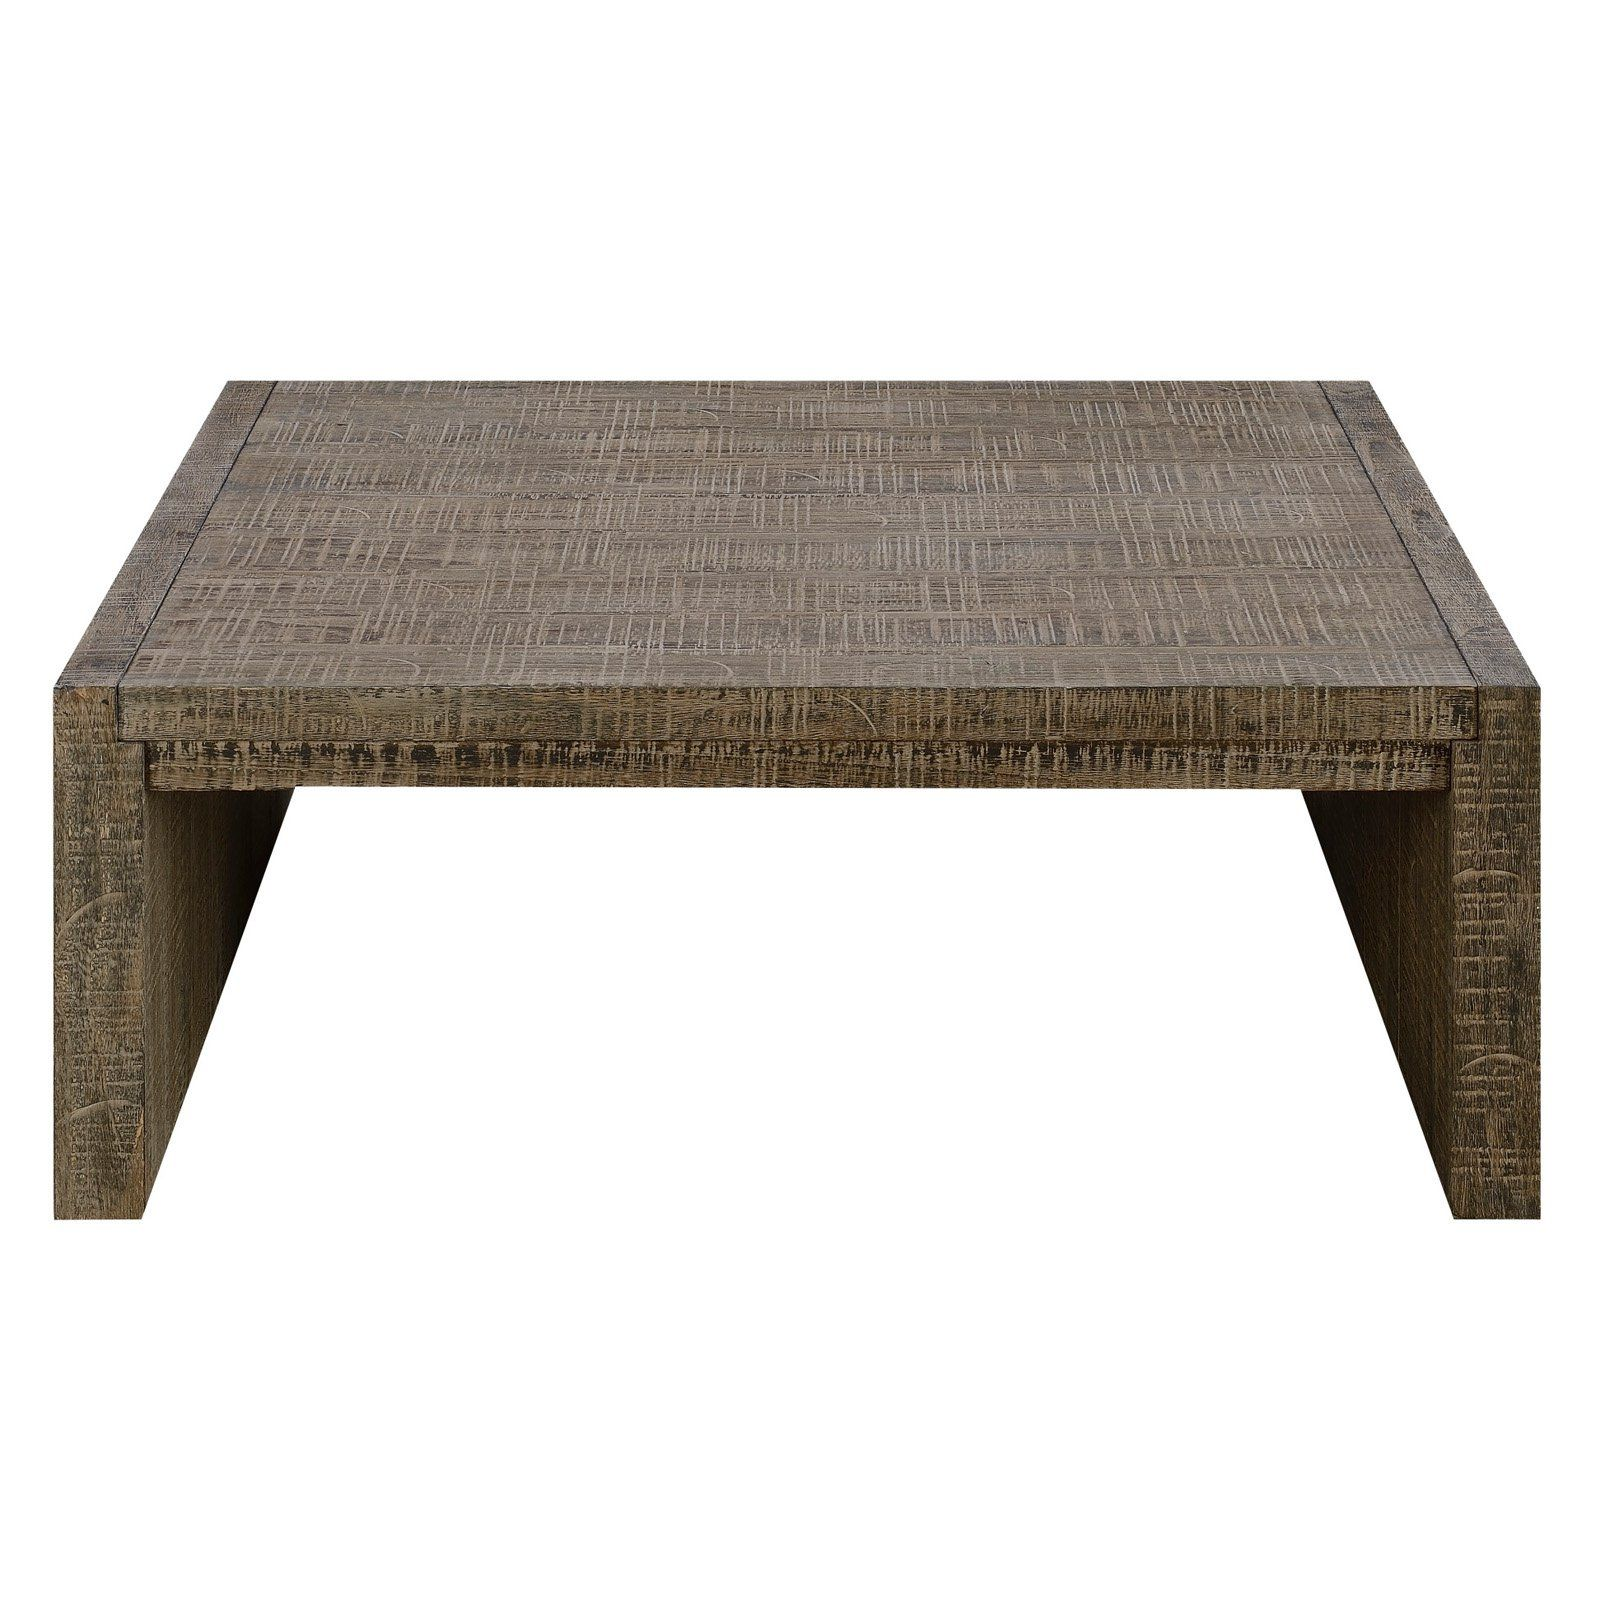 Emerald Home Cubix Square Coffee Table With Plank Style Top